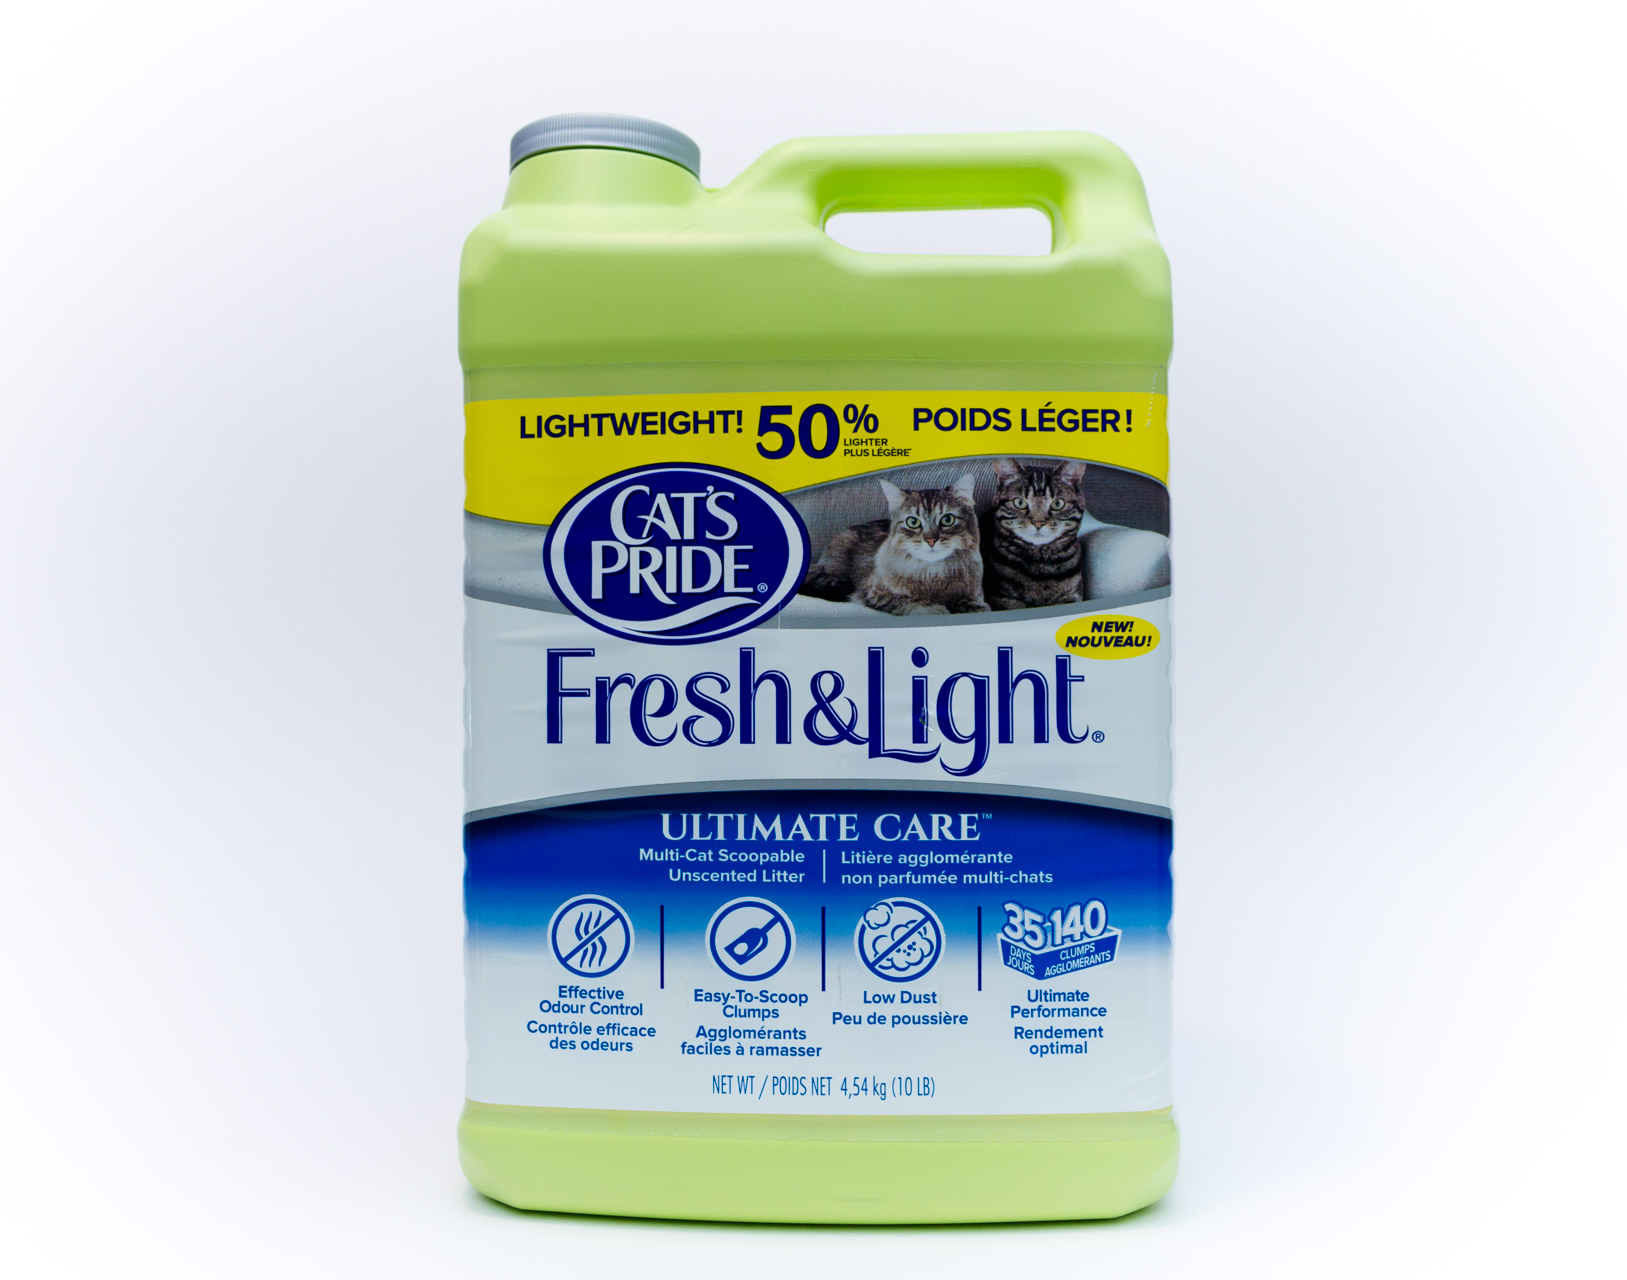 FRESH & LIGHT® ULTIMATE CARE<sup>MD</sup> NON-PARFUMÉE